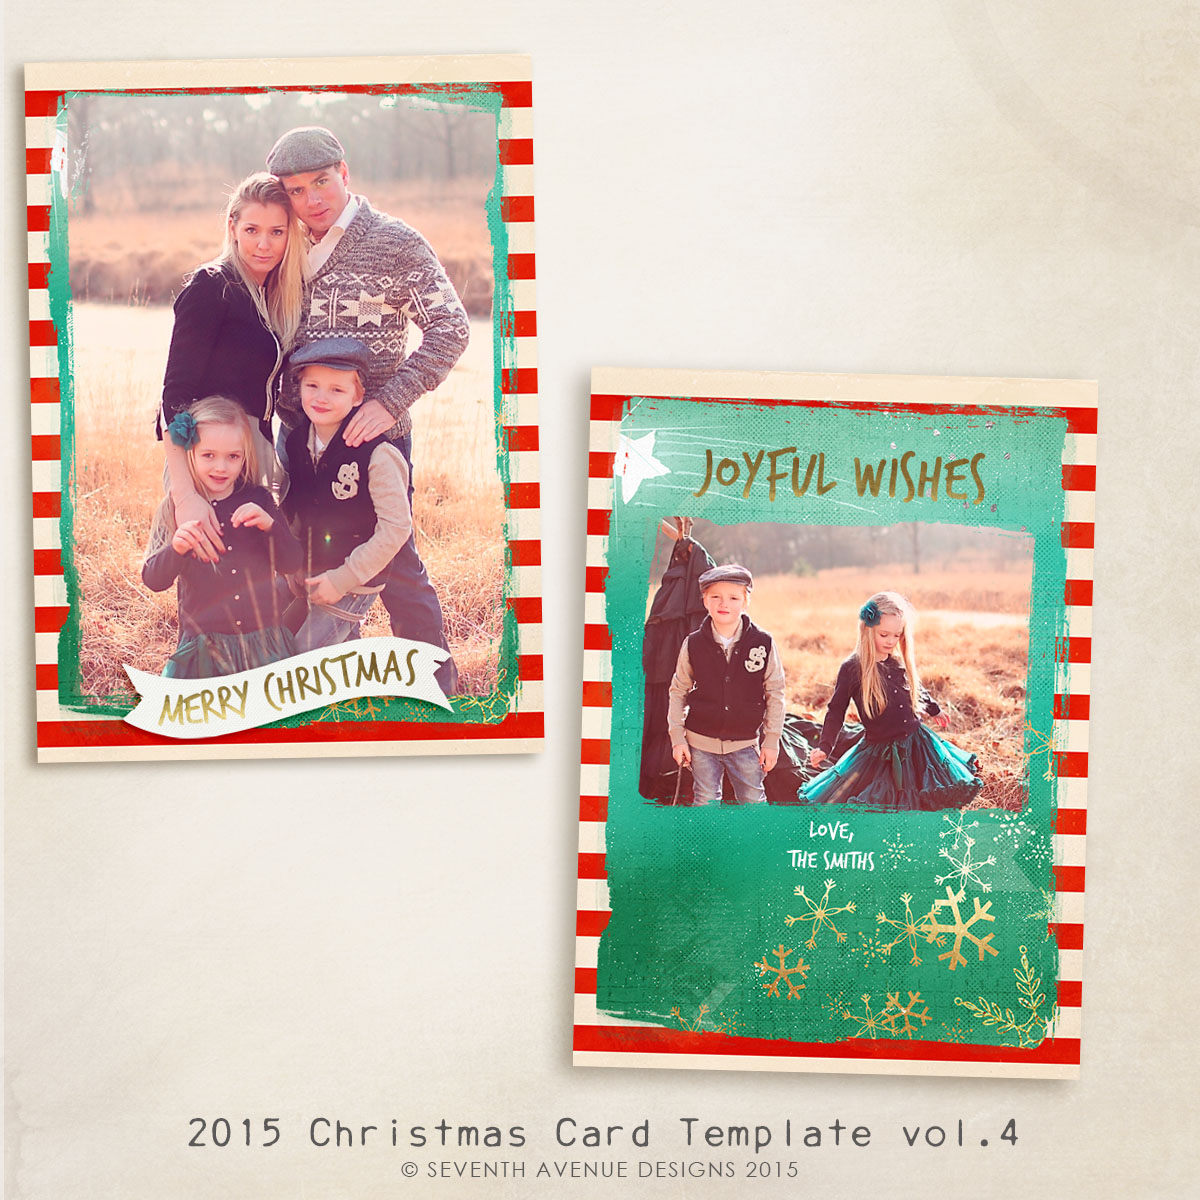 2015 Christmas Card Templates vol.4 -- 7x5 inch card template